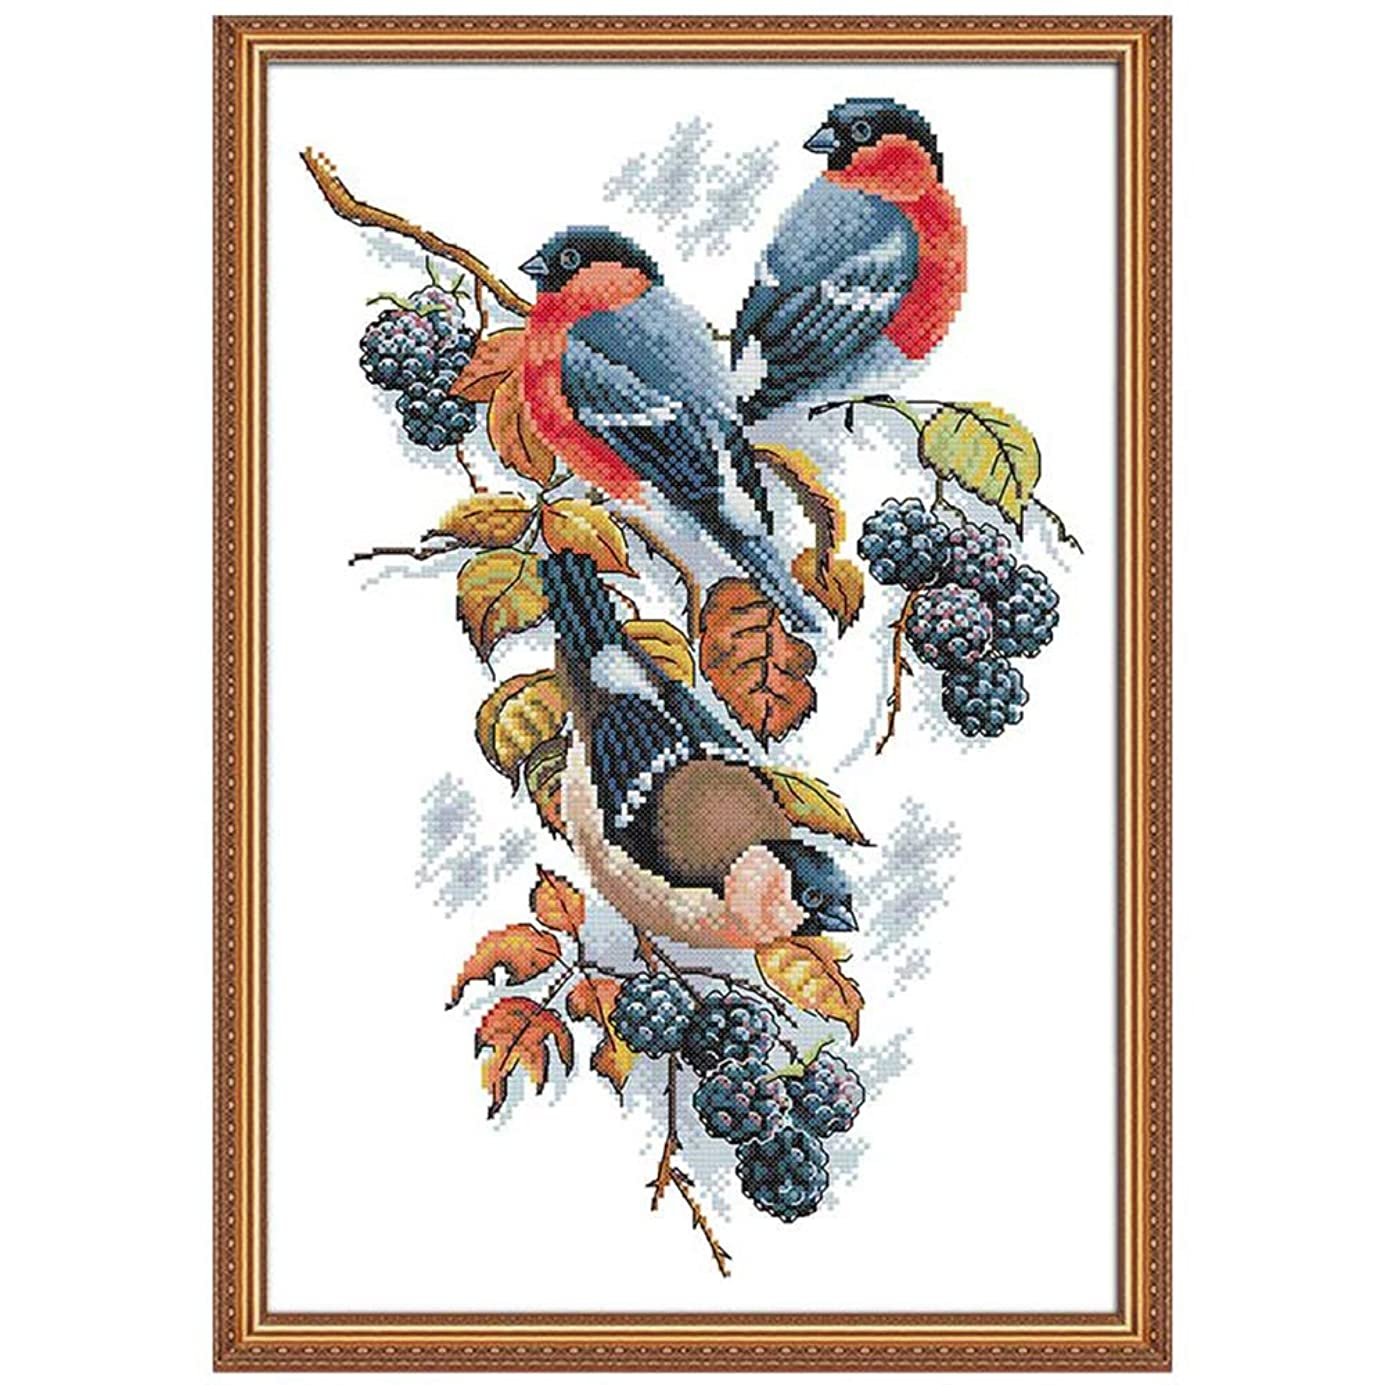 Joy Sunday 11CT Stamped Cross Stitch Kits Cross-Stitch Red Bellies Magpies and Blackberries Sewing Patterns Embriodery Kit 17''x23'' aiajzp9158